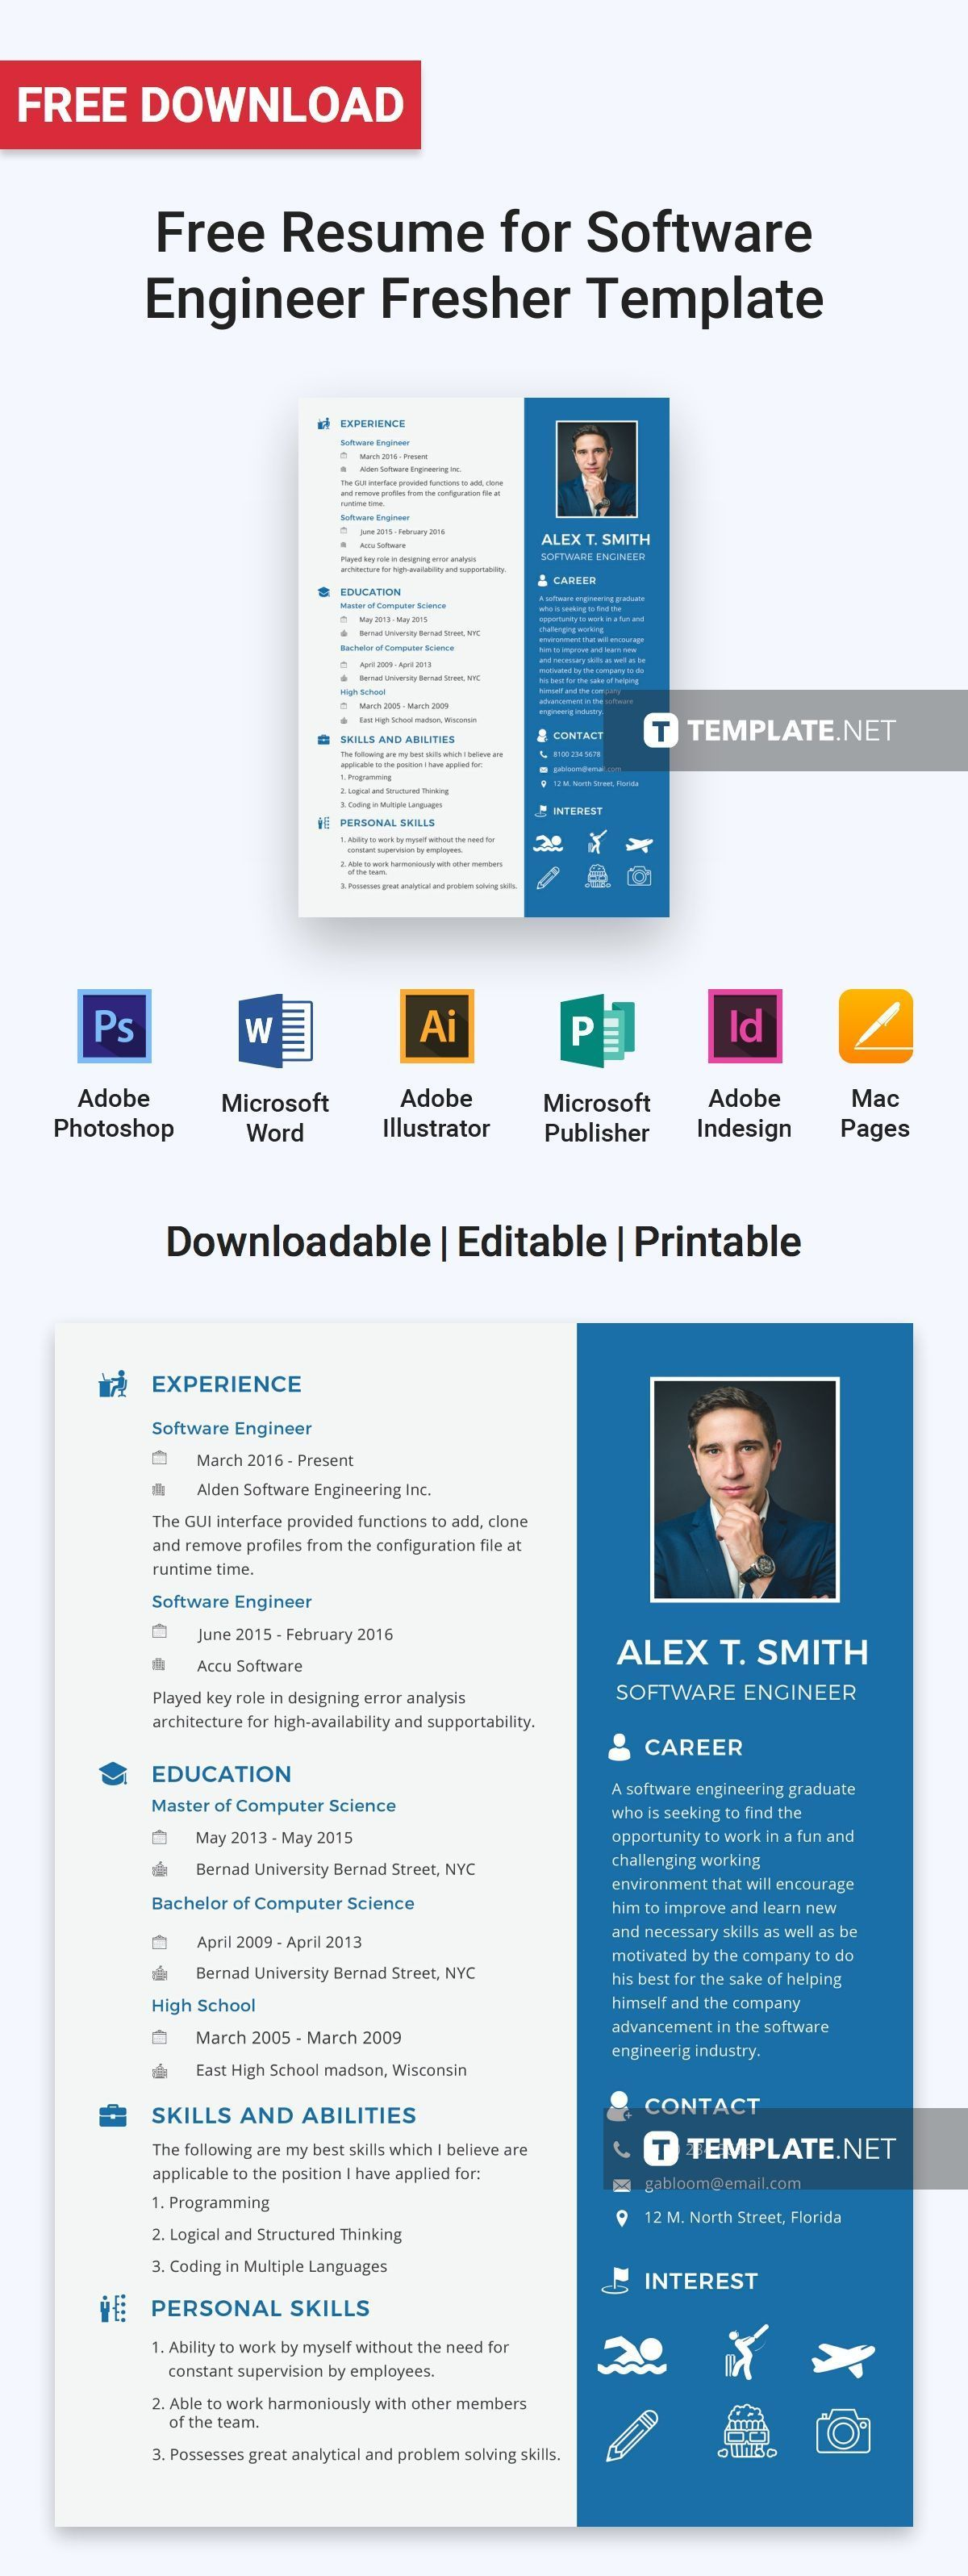 Free Resume for Software Engineer Fresher Resume tips